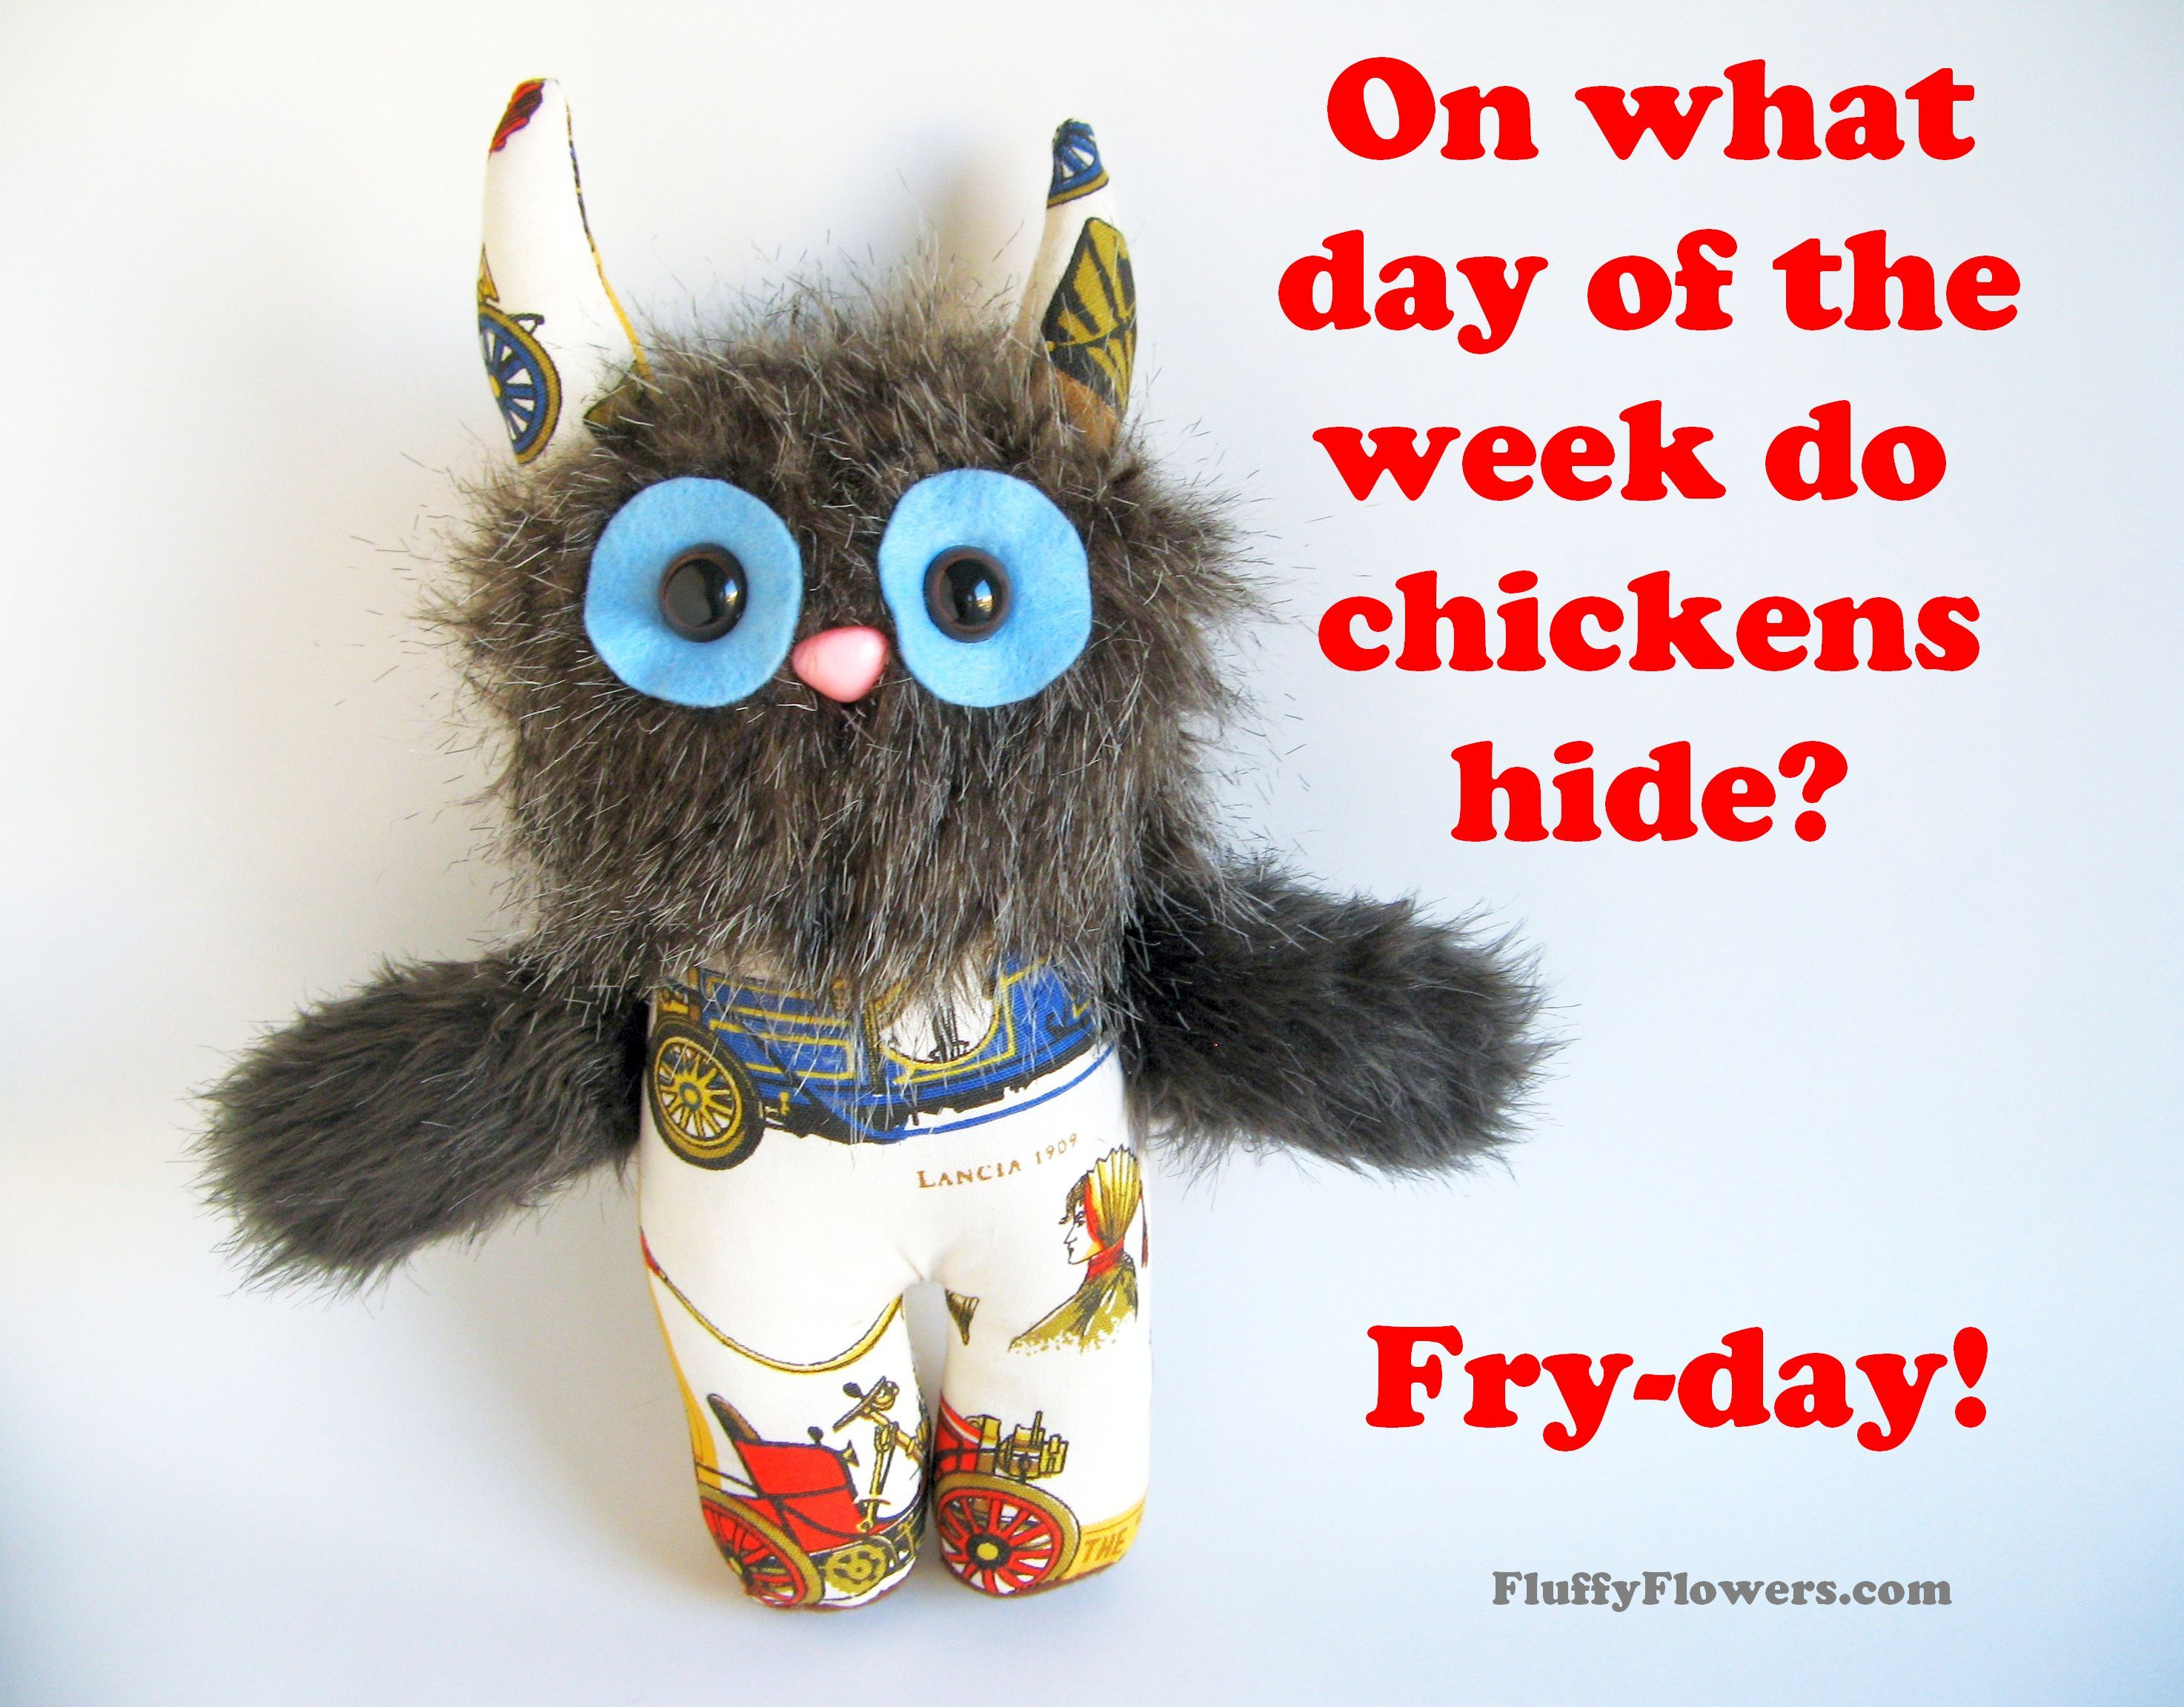 Cute Clean Friday Chicken Joke For Children Featuring An Adorable Monster Doll Funny Jokes For Kids Jokes For Kids Punny Jokes